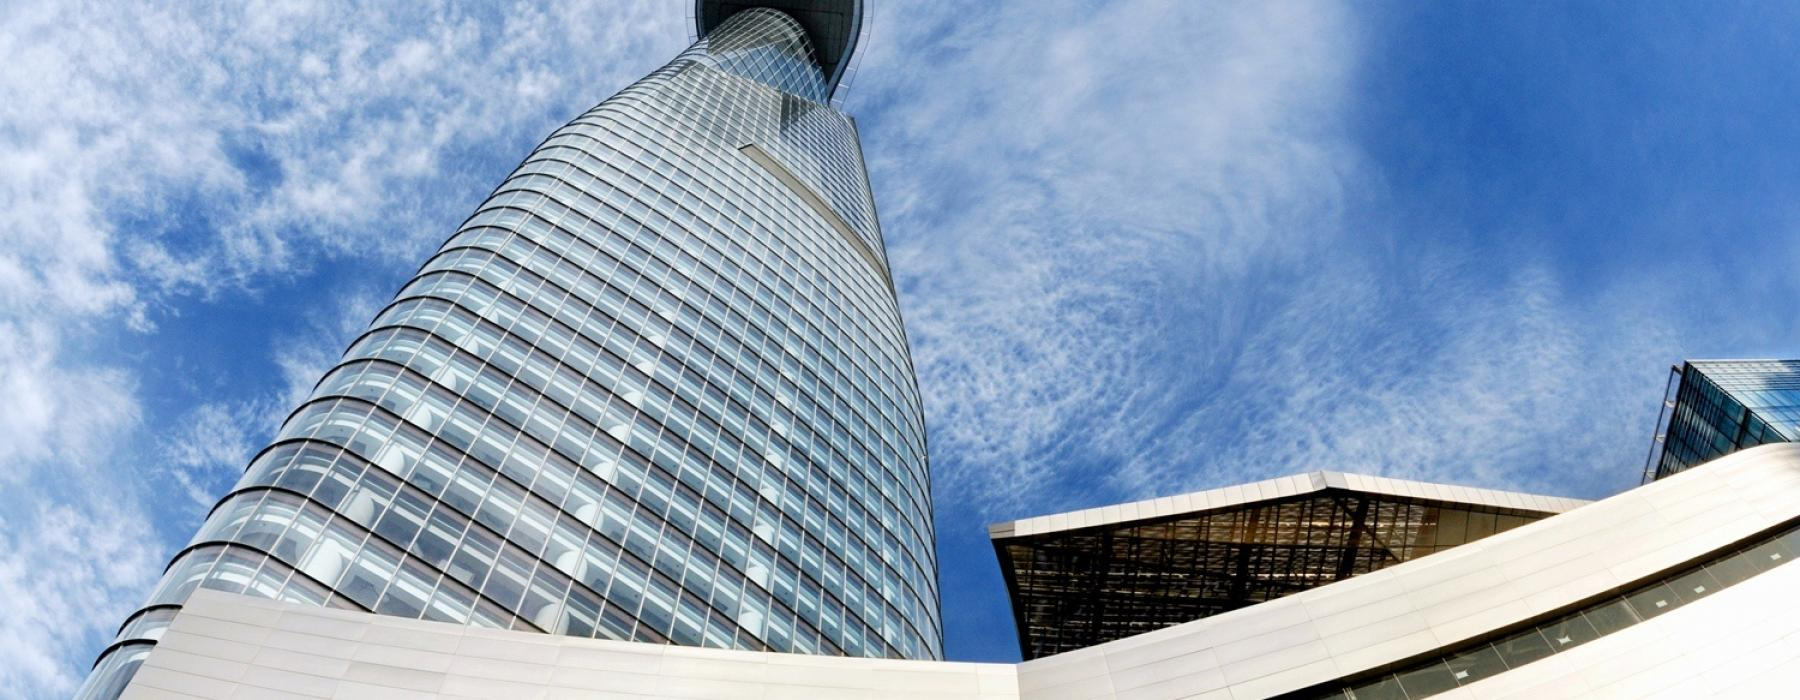 HCMC - Bitexco Financial Tower